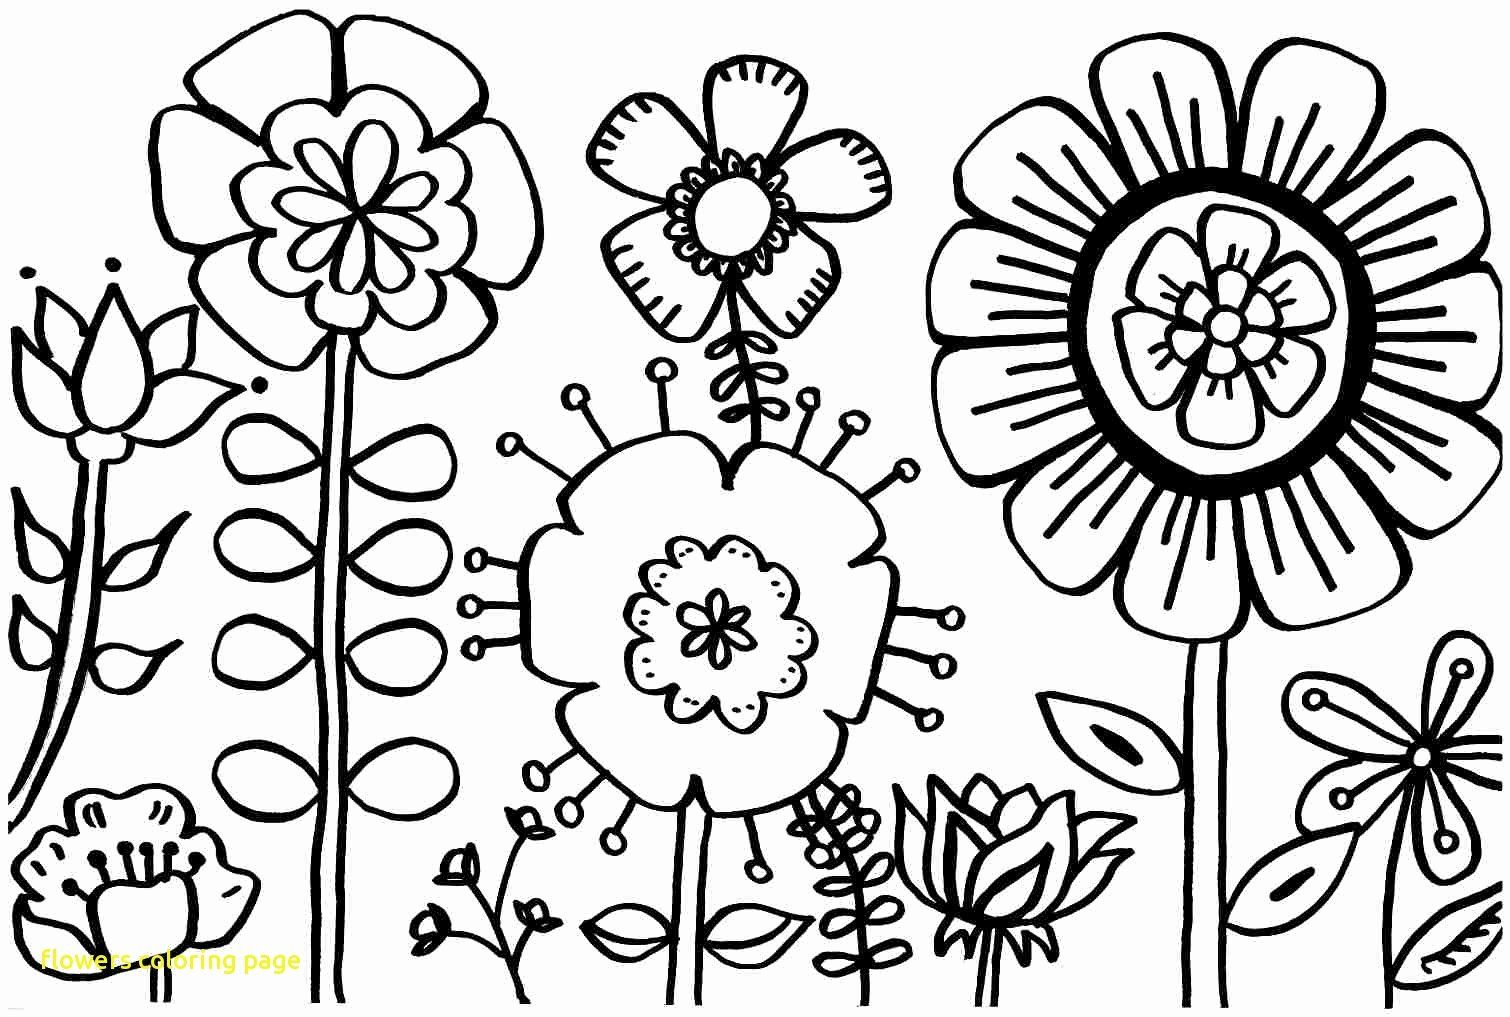 Flowers Coloring Book Pdf Beautiful The Best Free Limited Coloring Page Images Dow Spring Coloring Pages Printable Flower Coloring Pages Spring Coloring Sheets